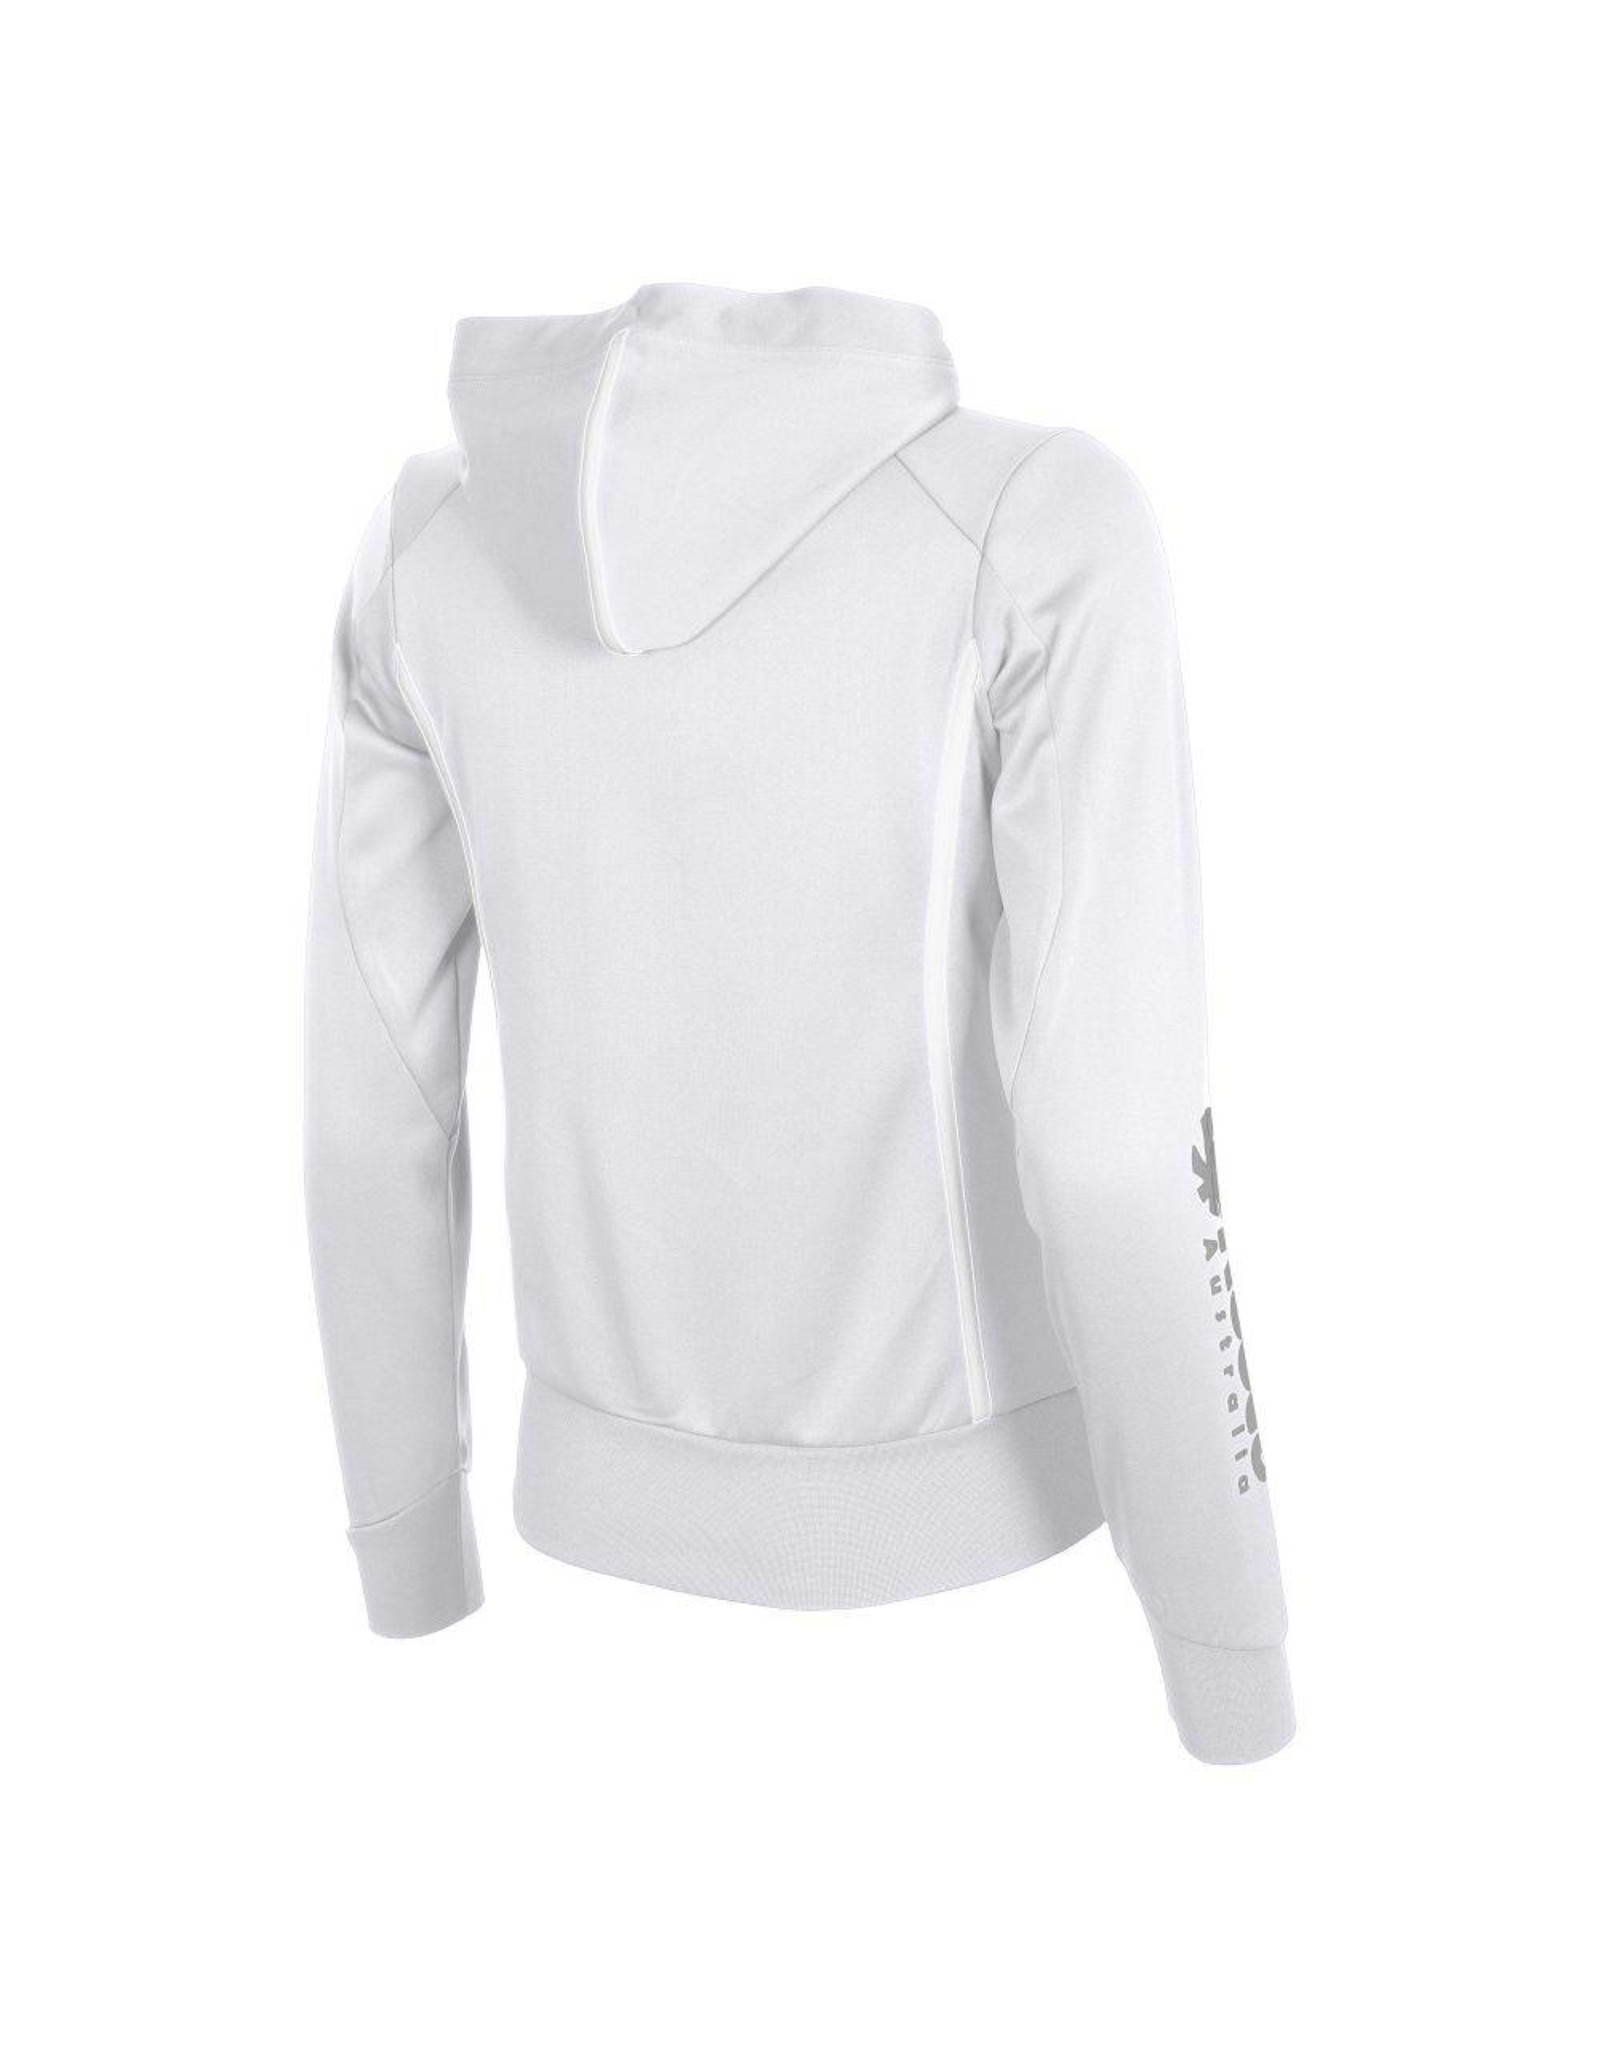 Reece Core TTS Hooded FZ Ladies White